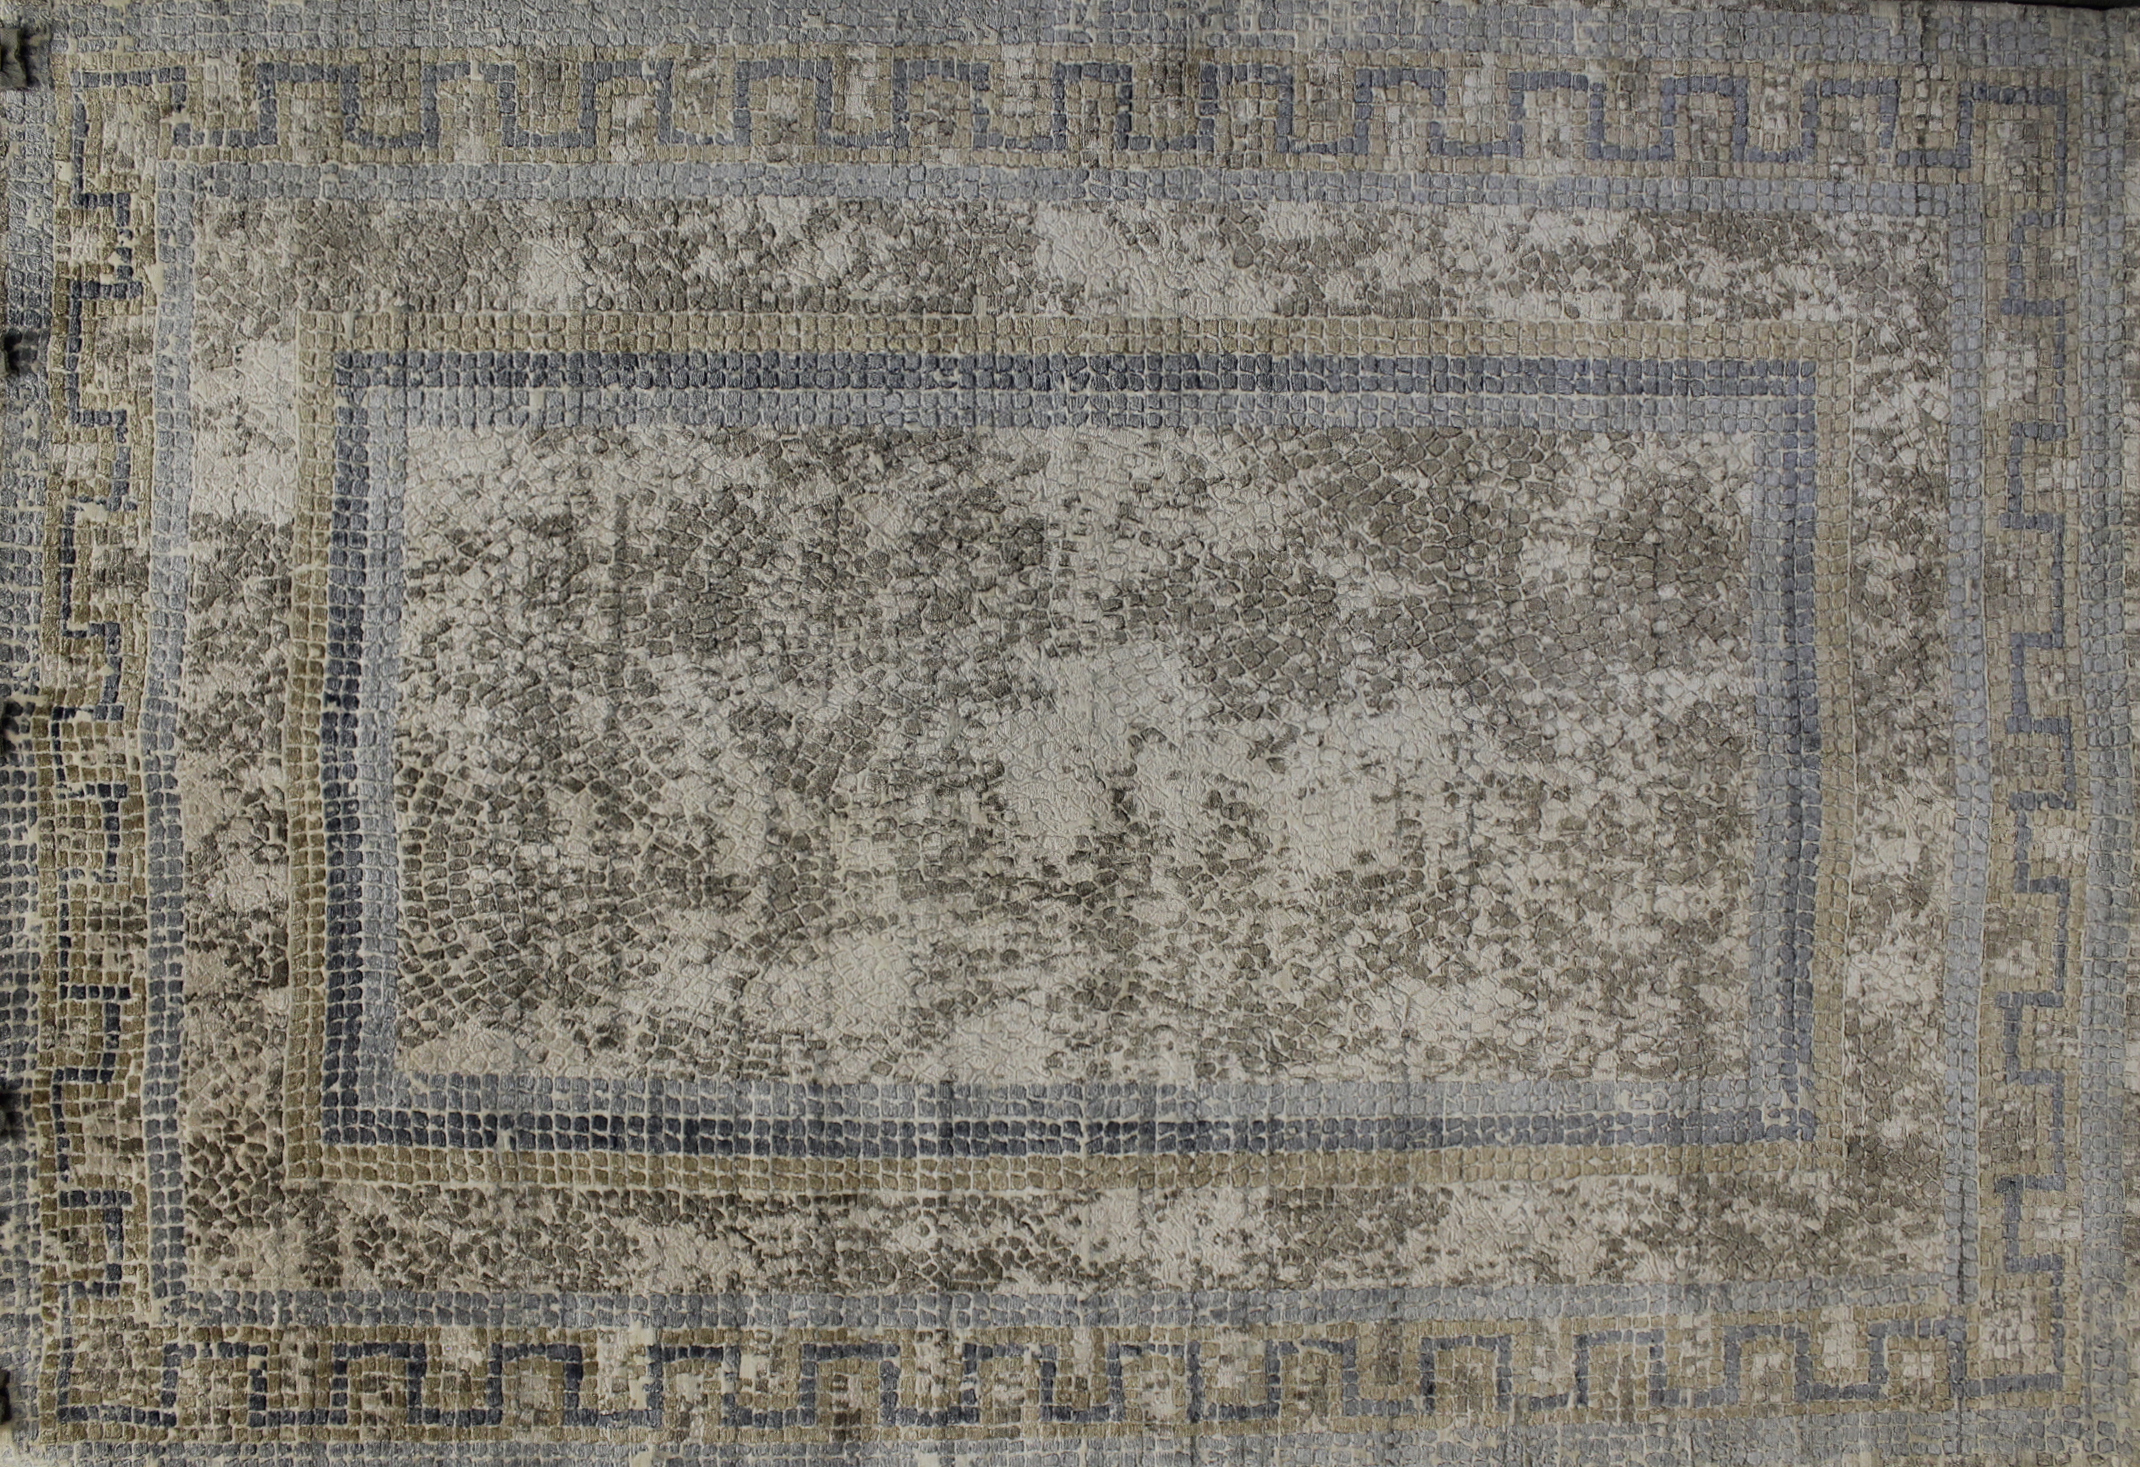 6x9 Contemporary Hand Knotted Wool Area Rug - MR022321